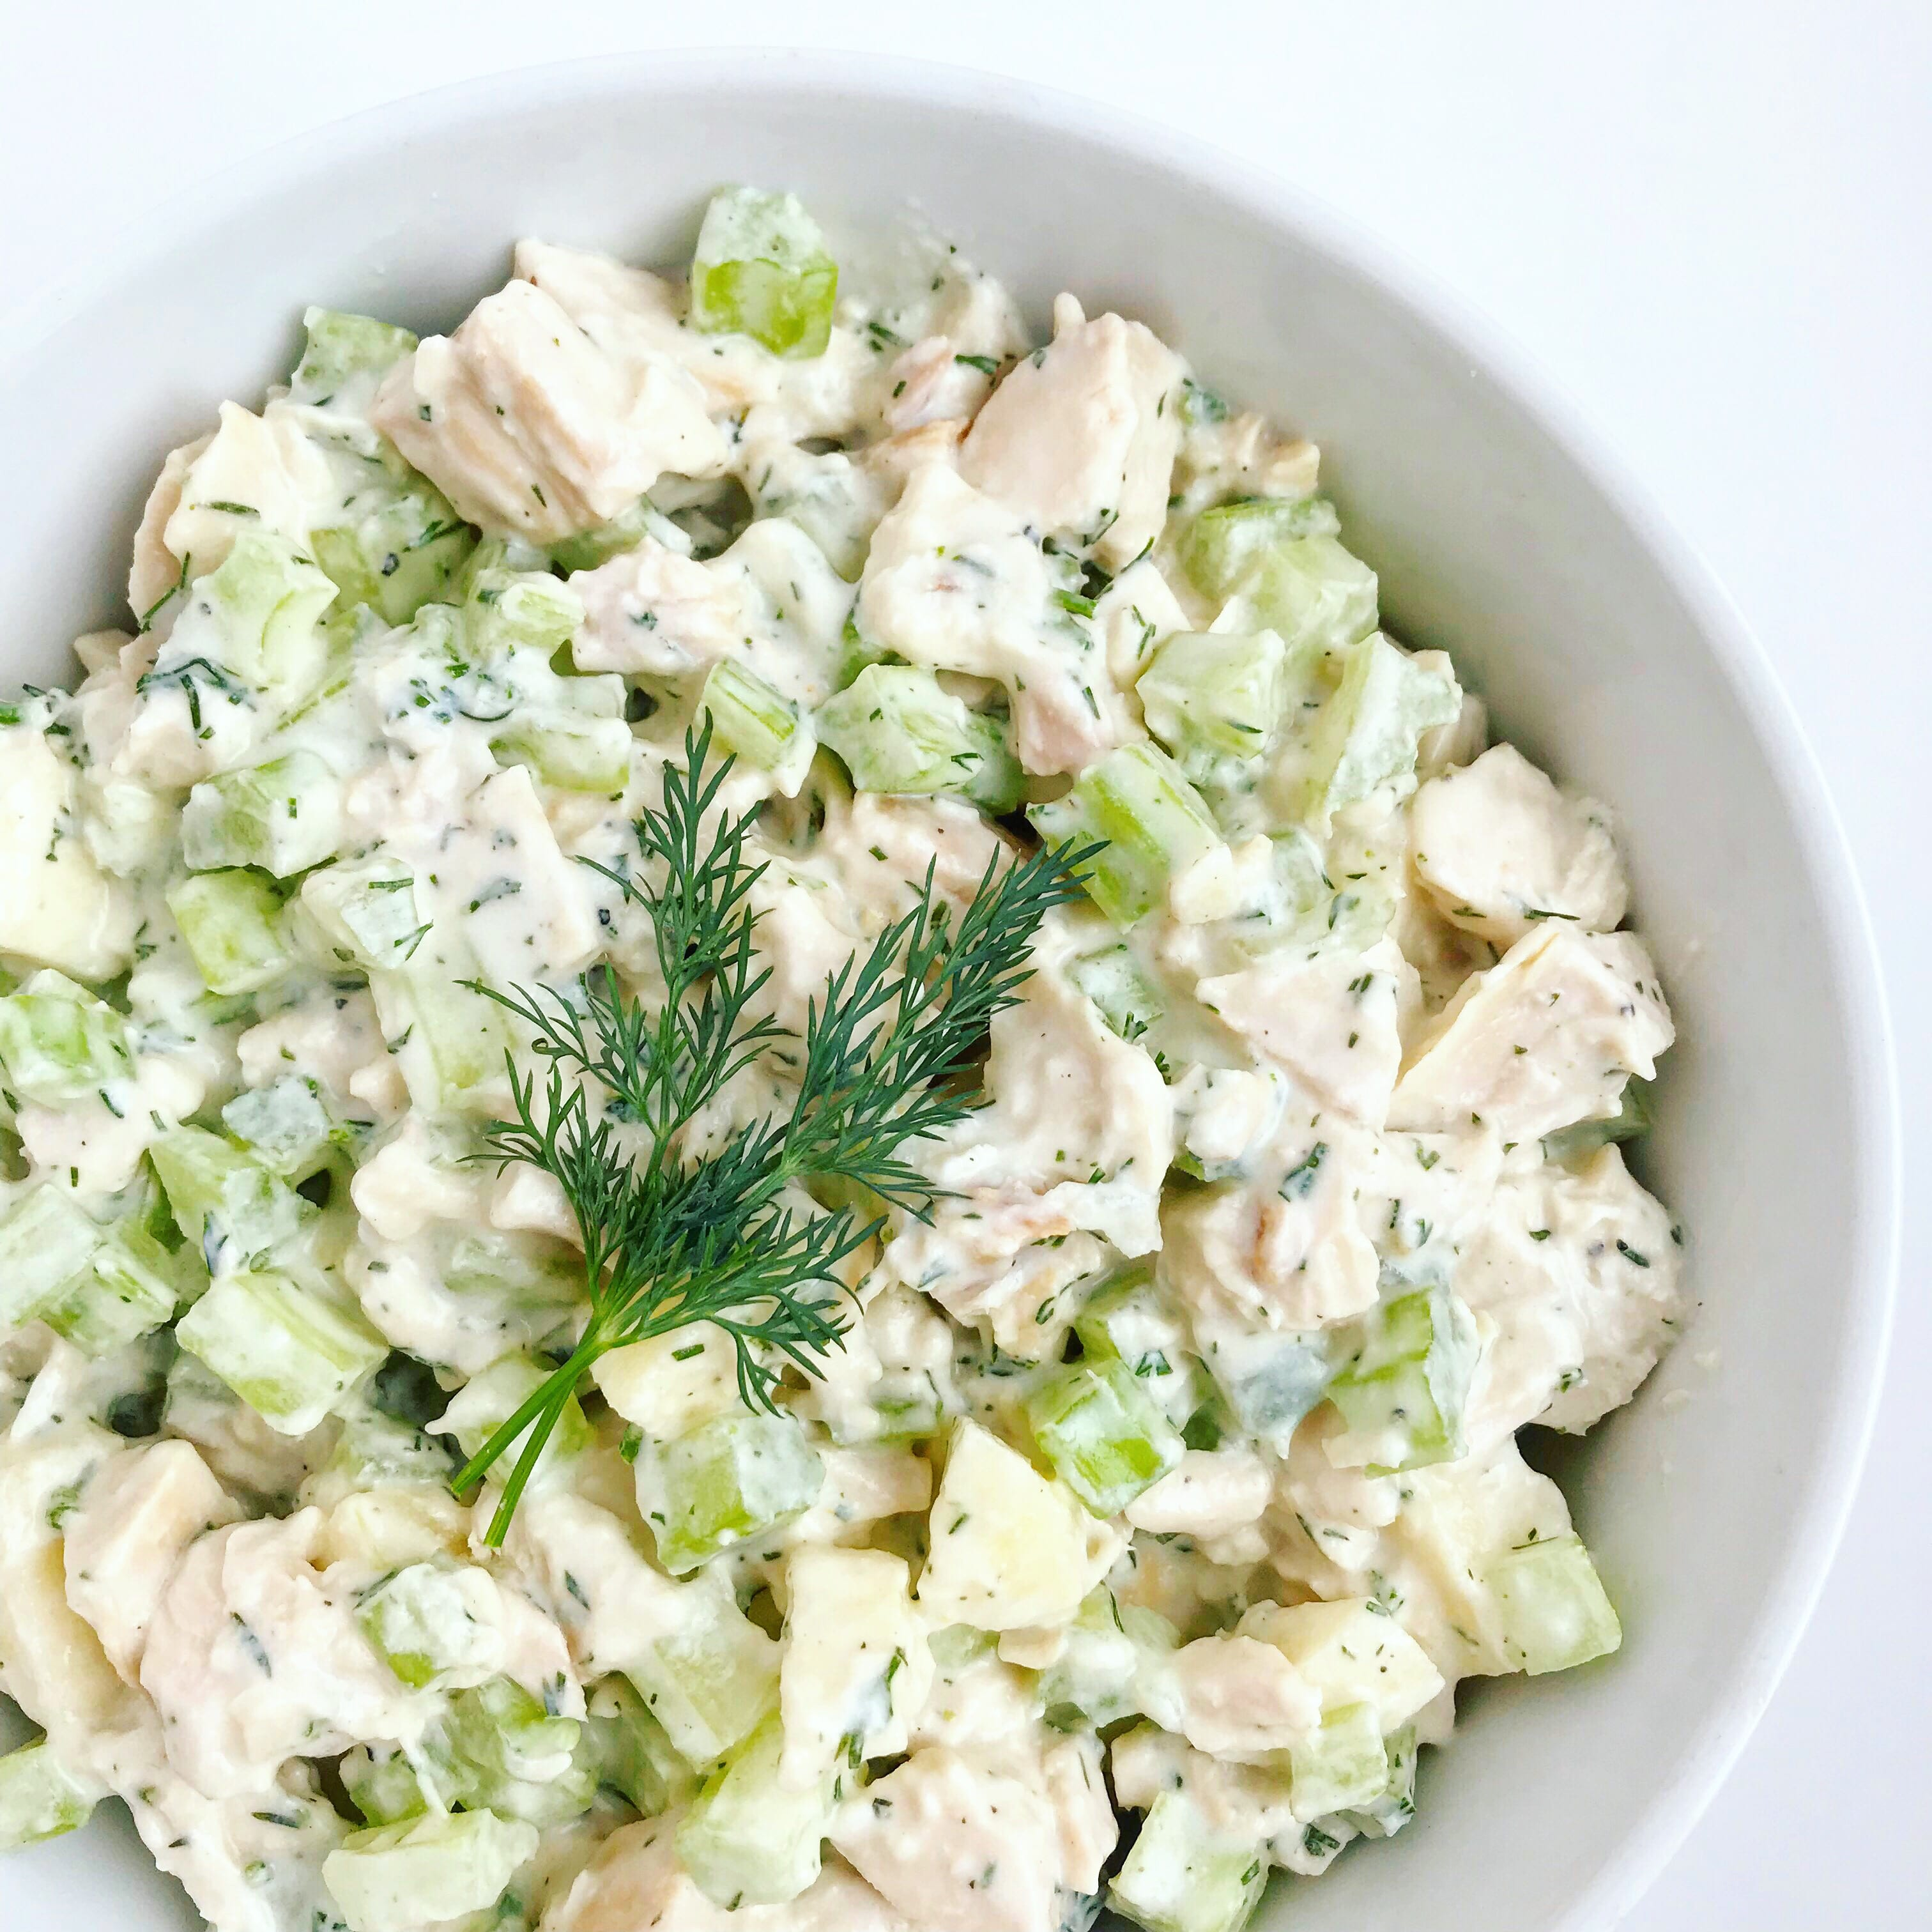 A bowl of dairy-free chicken salad, topped with fresh dill.